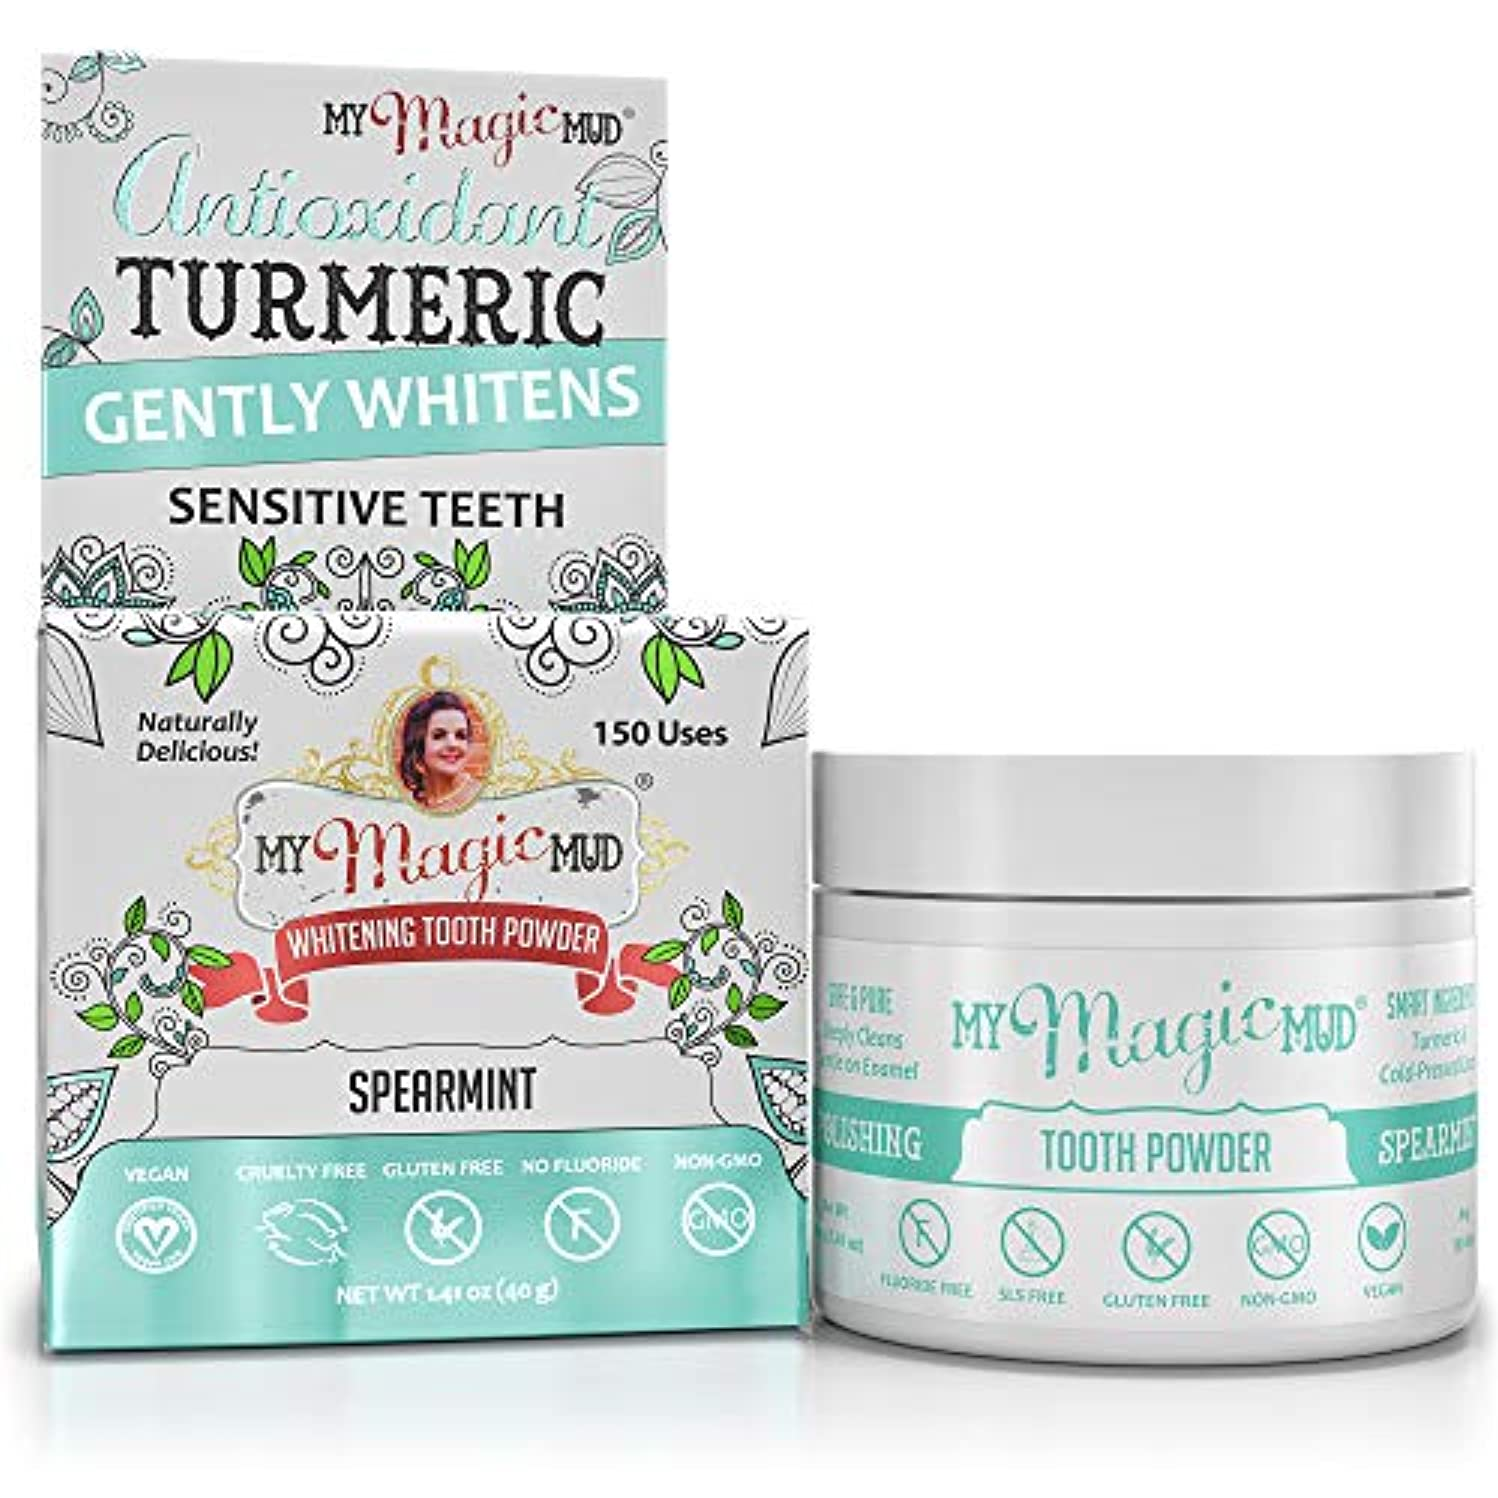 幻影ぶら下がる違うMy Magic Mud Turmeric Whitening Tooth Powder - Spearmint 40g/1.41oz並行輸入品